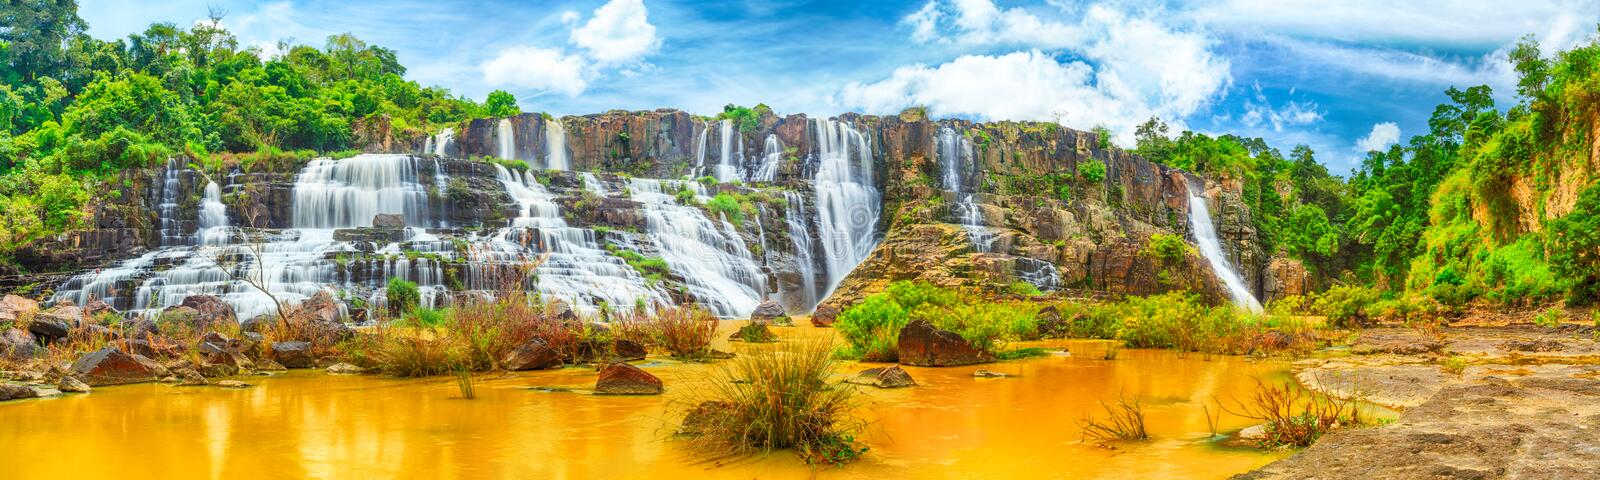 Download Pongour waterfall stock image. Image of river, outdoors - 25815165